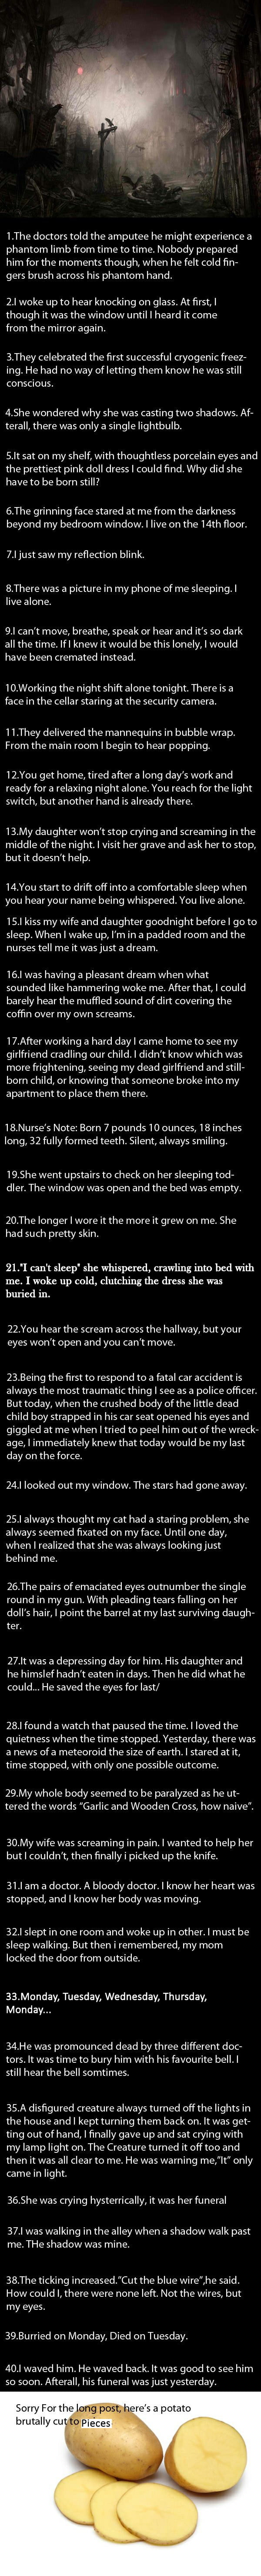 40 Short Scary Stories  - 9GAG